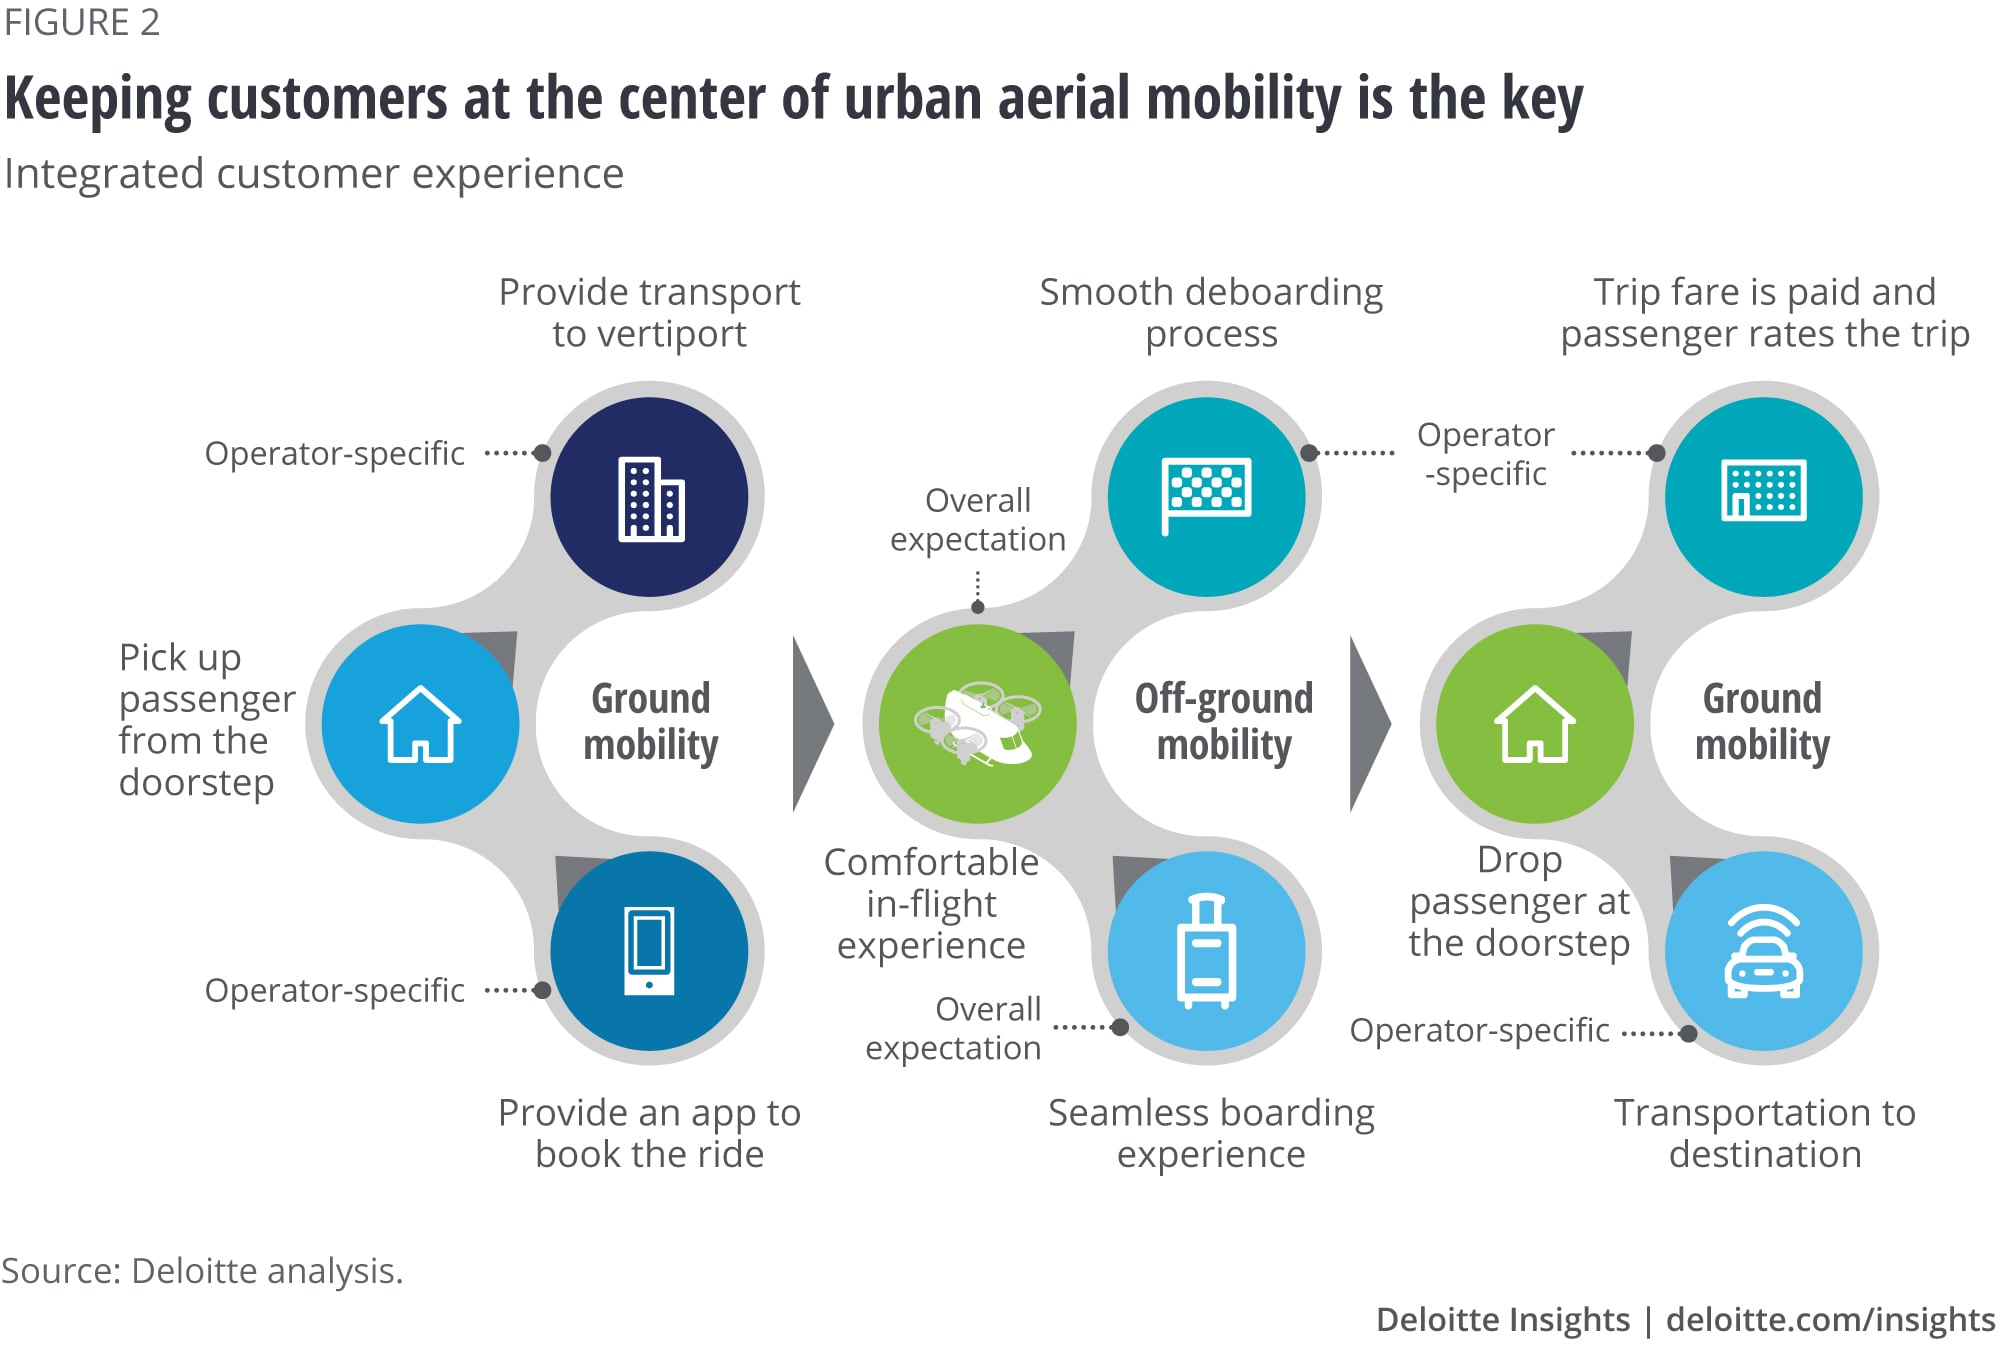 Keeping customers at the center of urban aerial mobility is the key